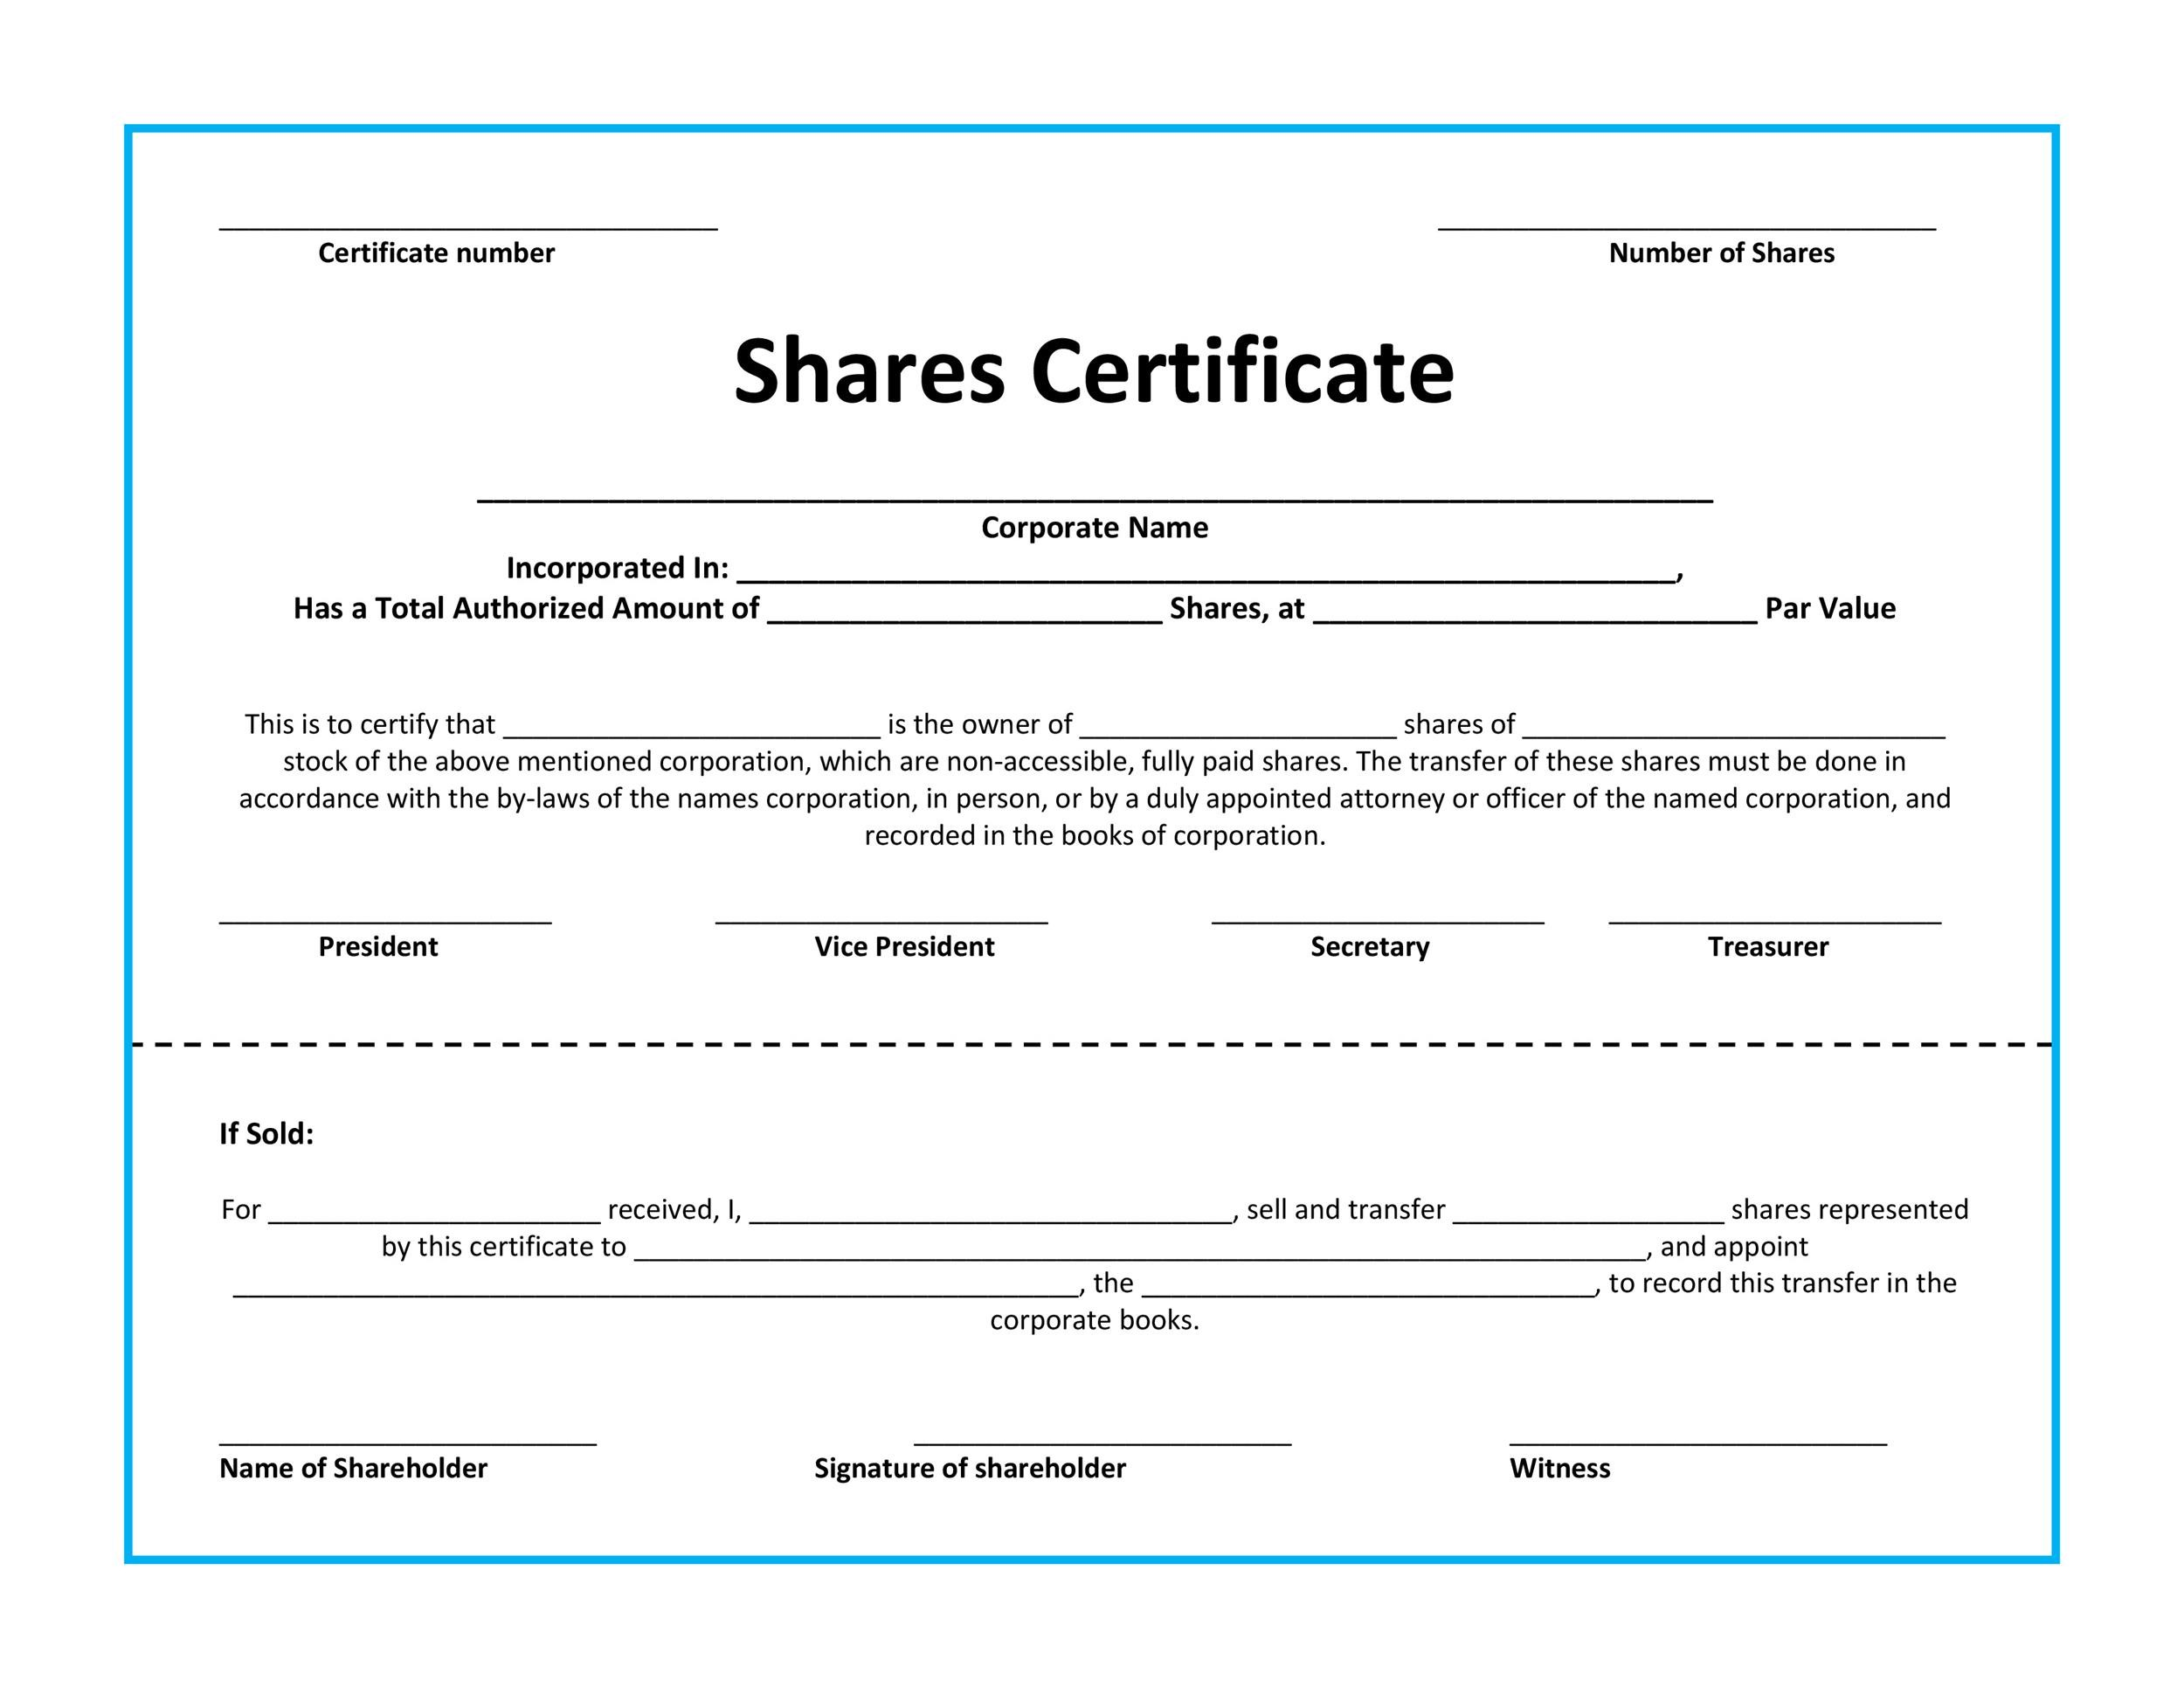 Shareholder certificate template passionative shareholder certificate template yelopaper Gallery